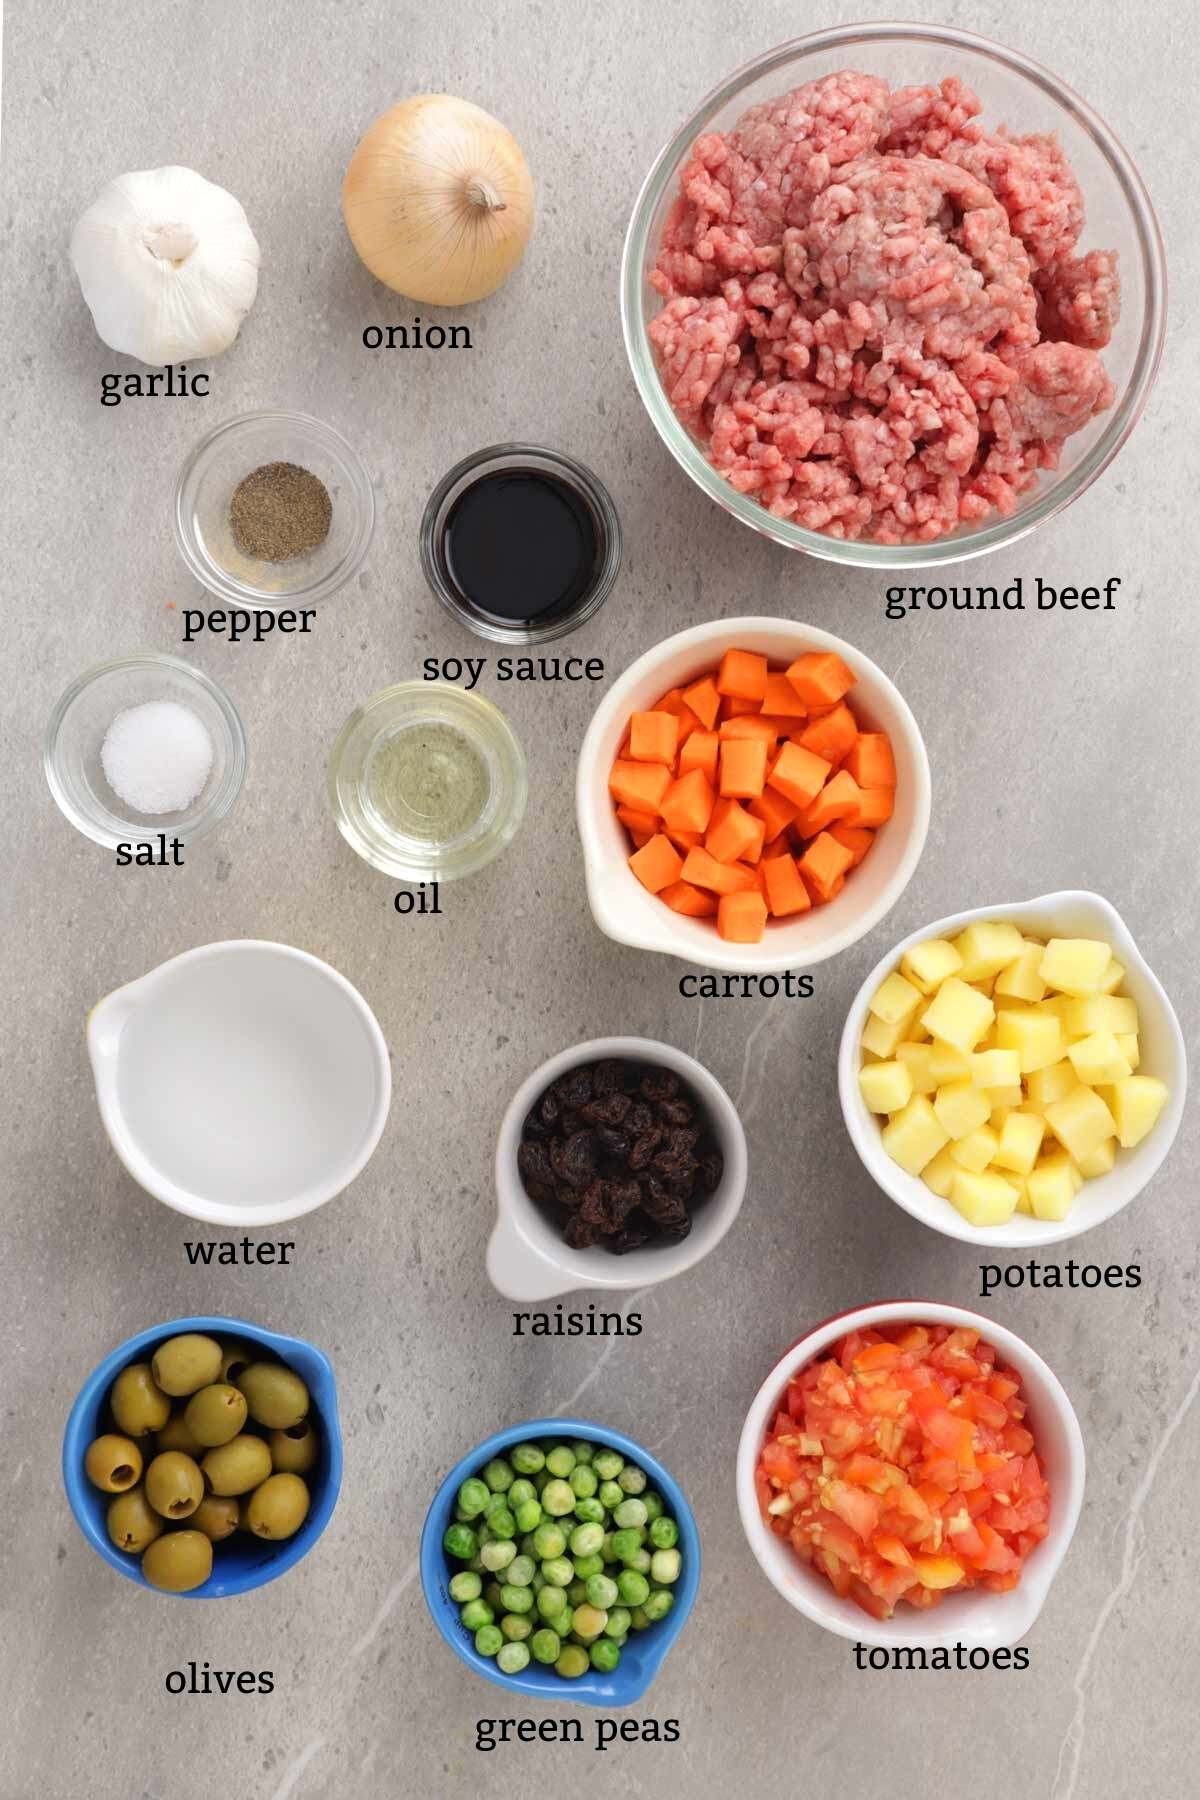 Ingredients for making Picadillo.